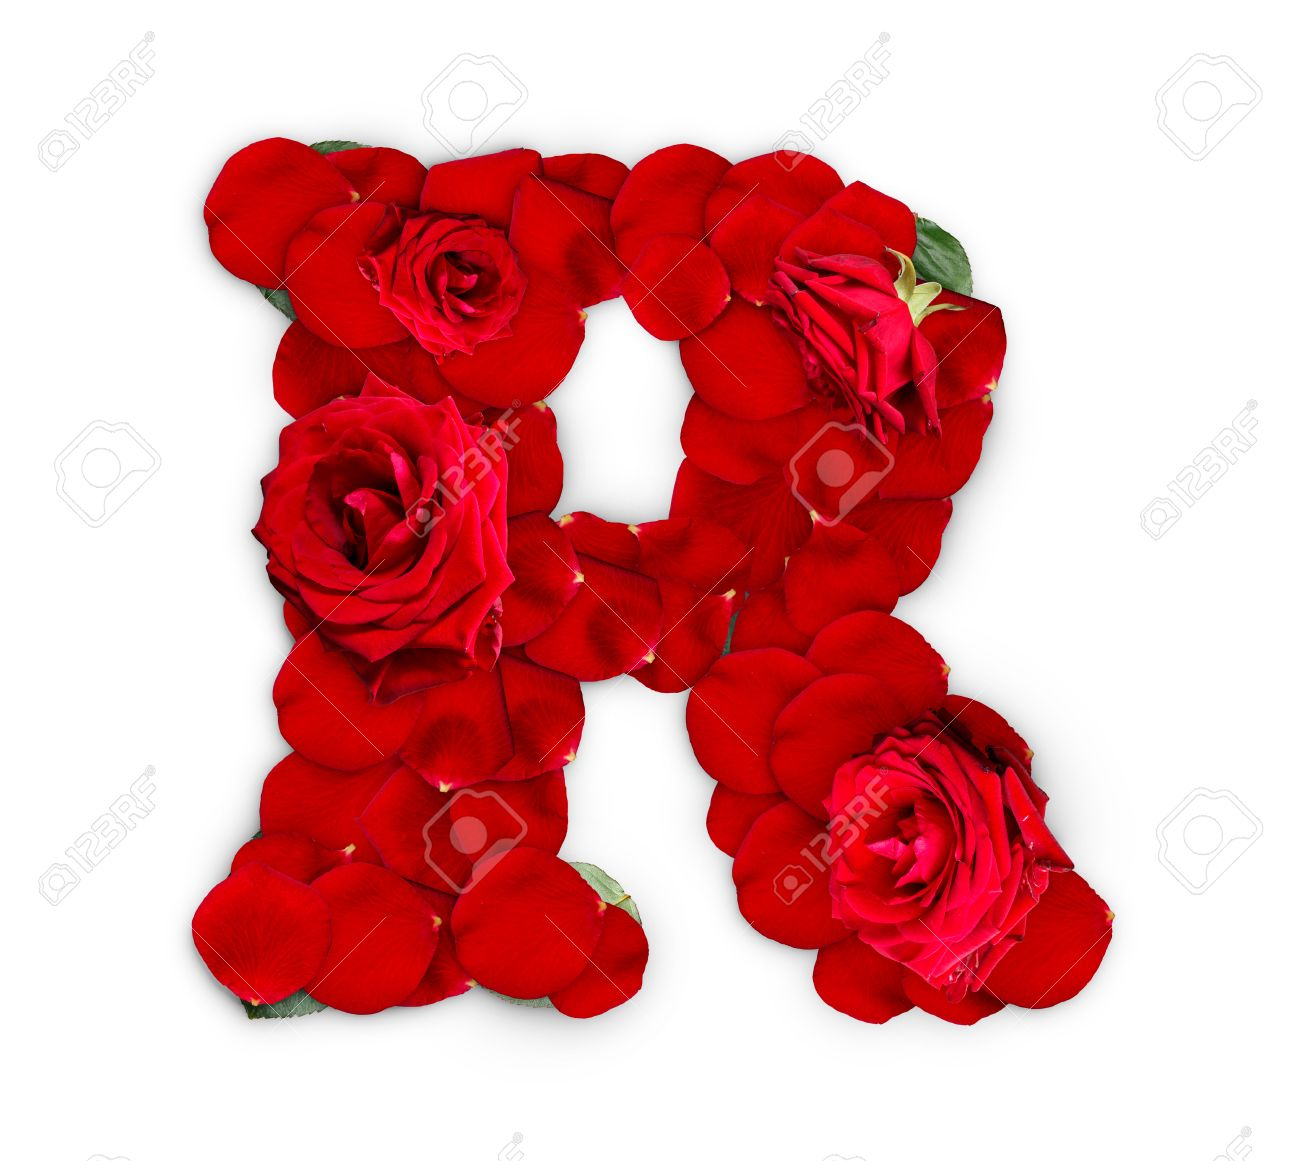 Letter R Made From Red Roses And Petals Isolated On A White Background  Stock Photo